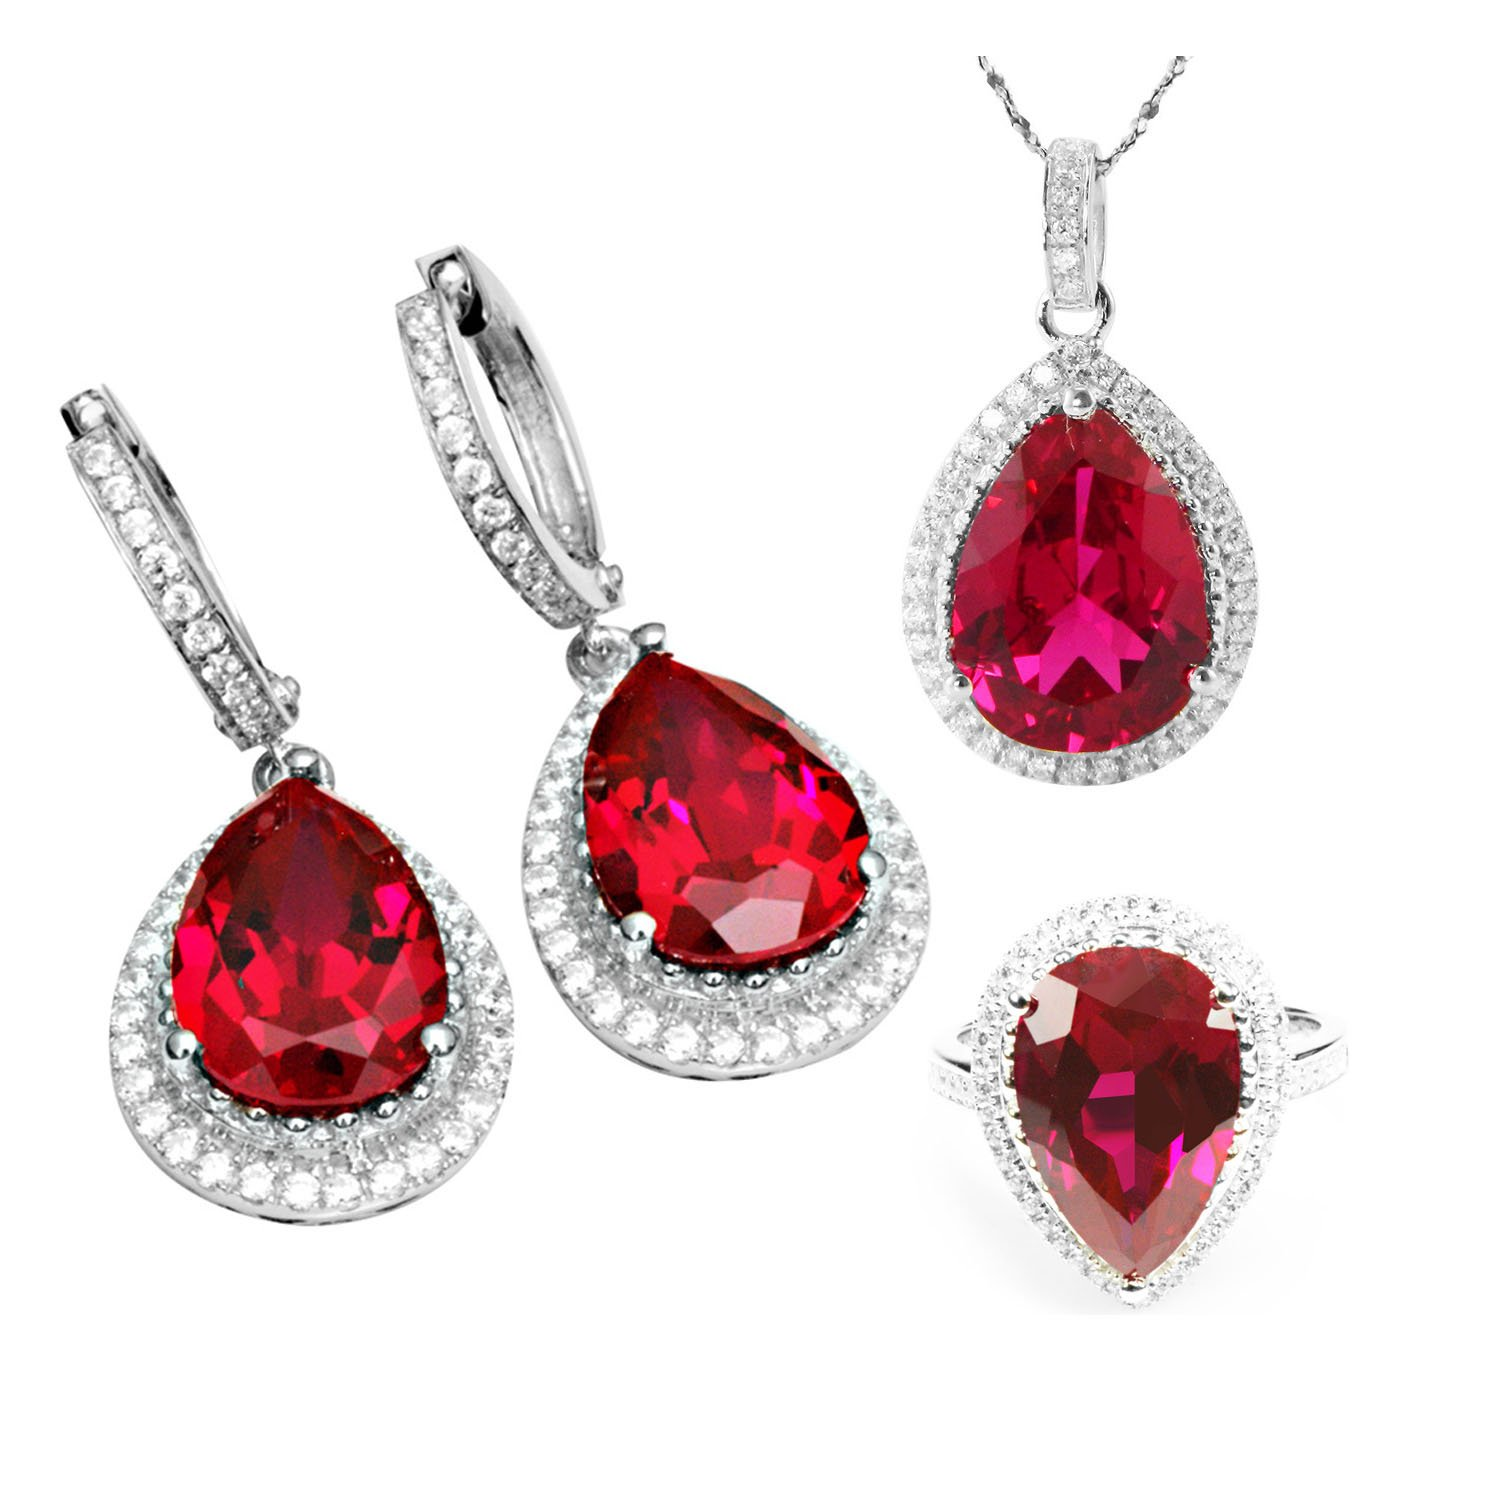 Jewelrypalace Ruby Sets Dangle Earrings Pendant Necklace Engagement Ring 925 Sterling Silver Size 6